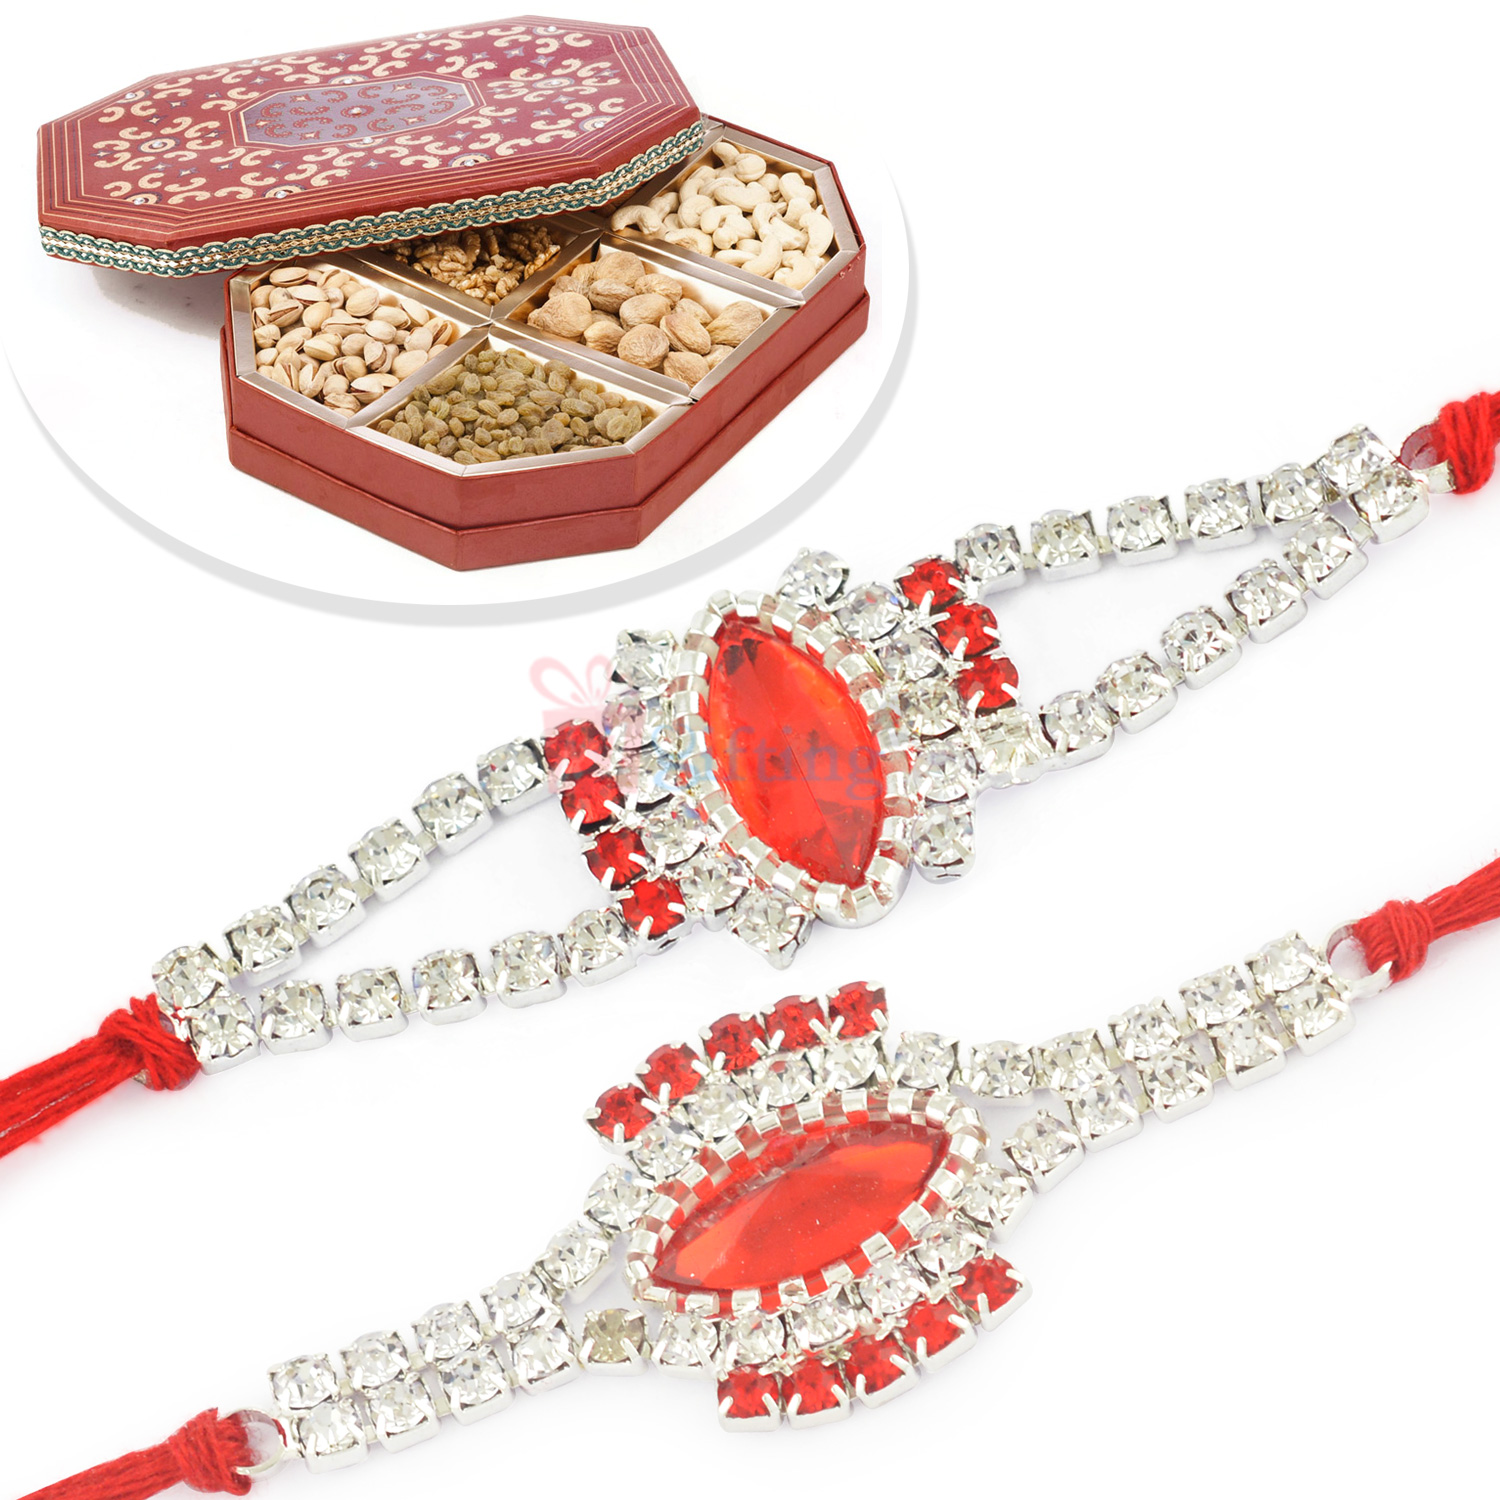 Awesome 2 Silver Jewel Rakhi Set with 6 type Dryfruits Box